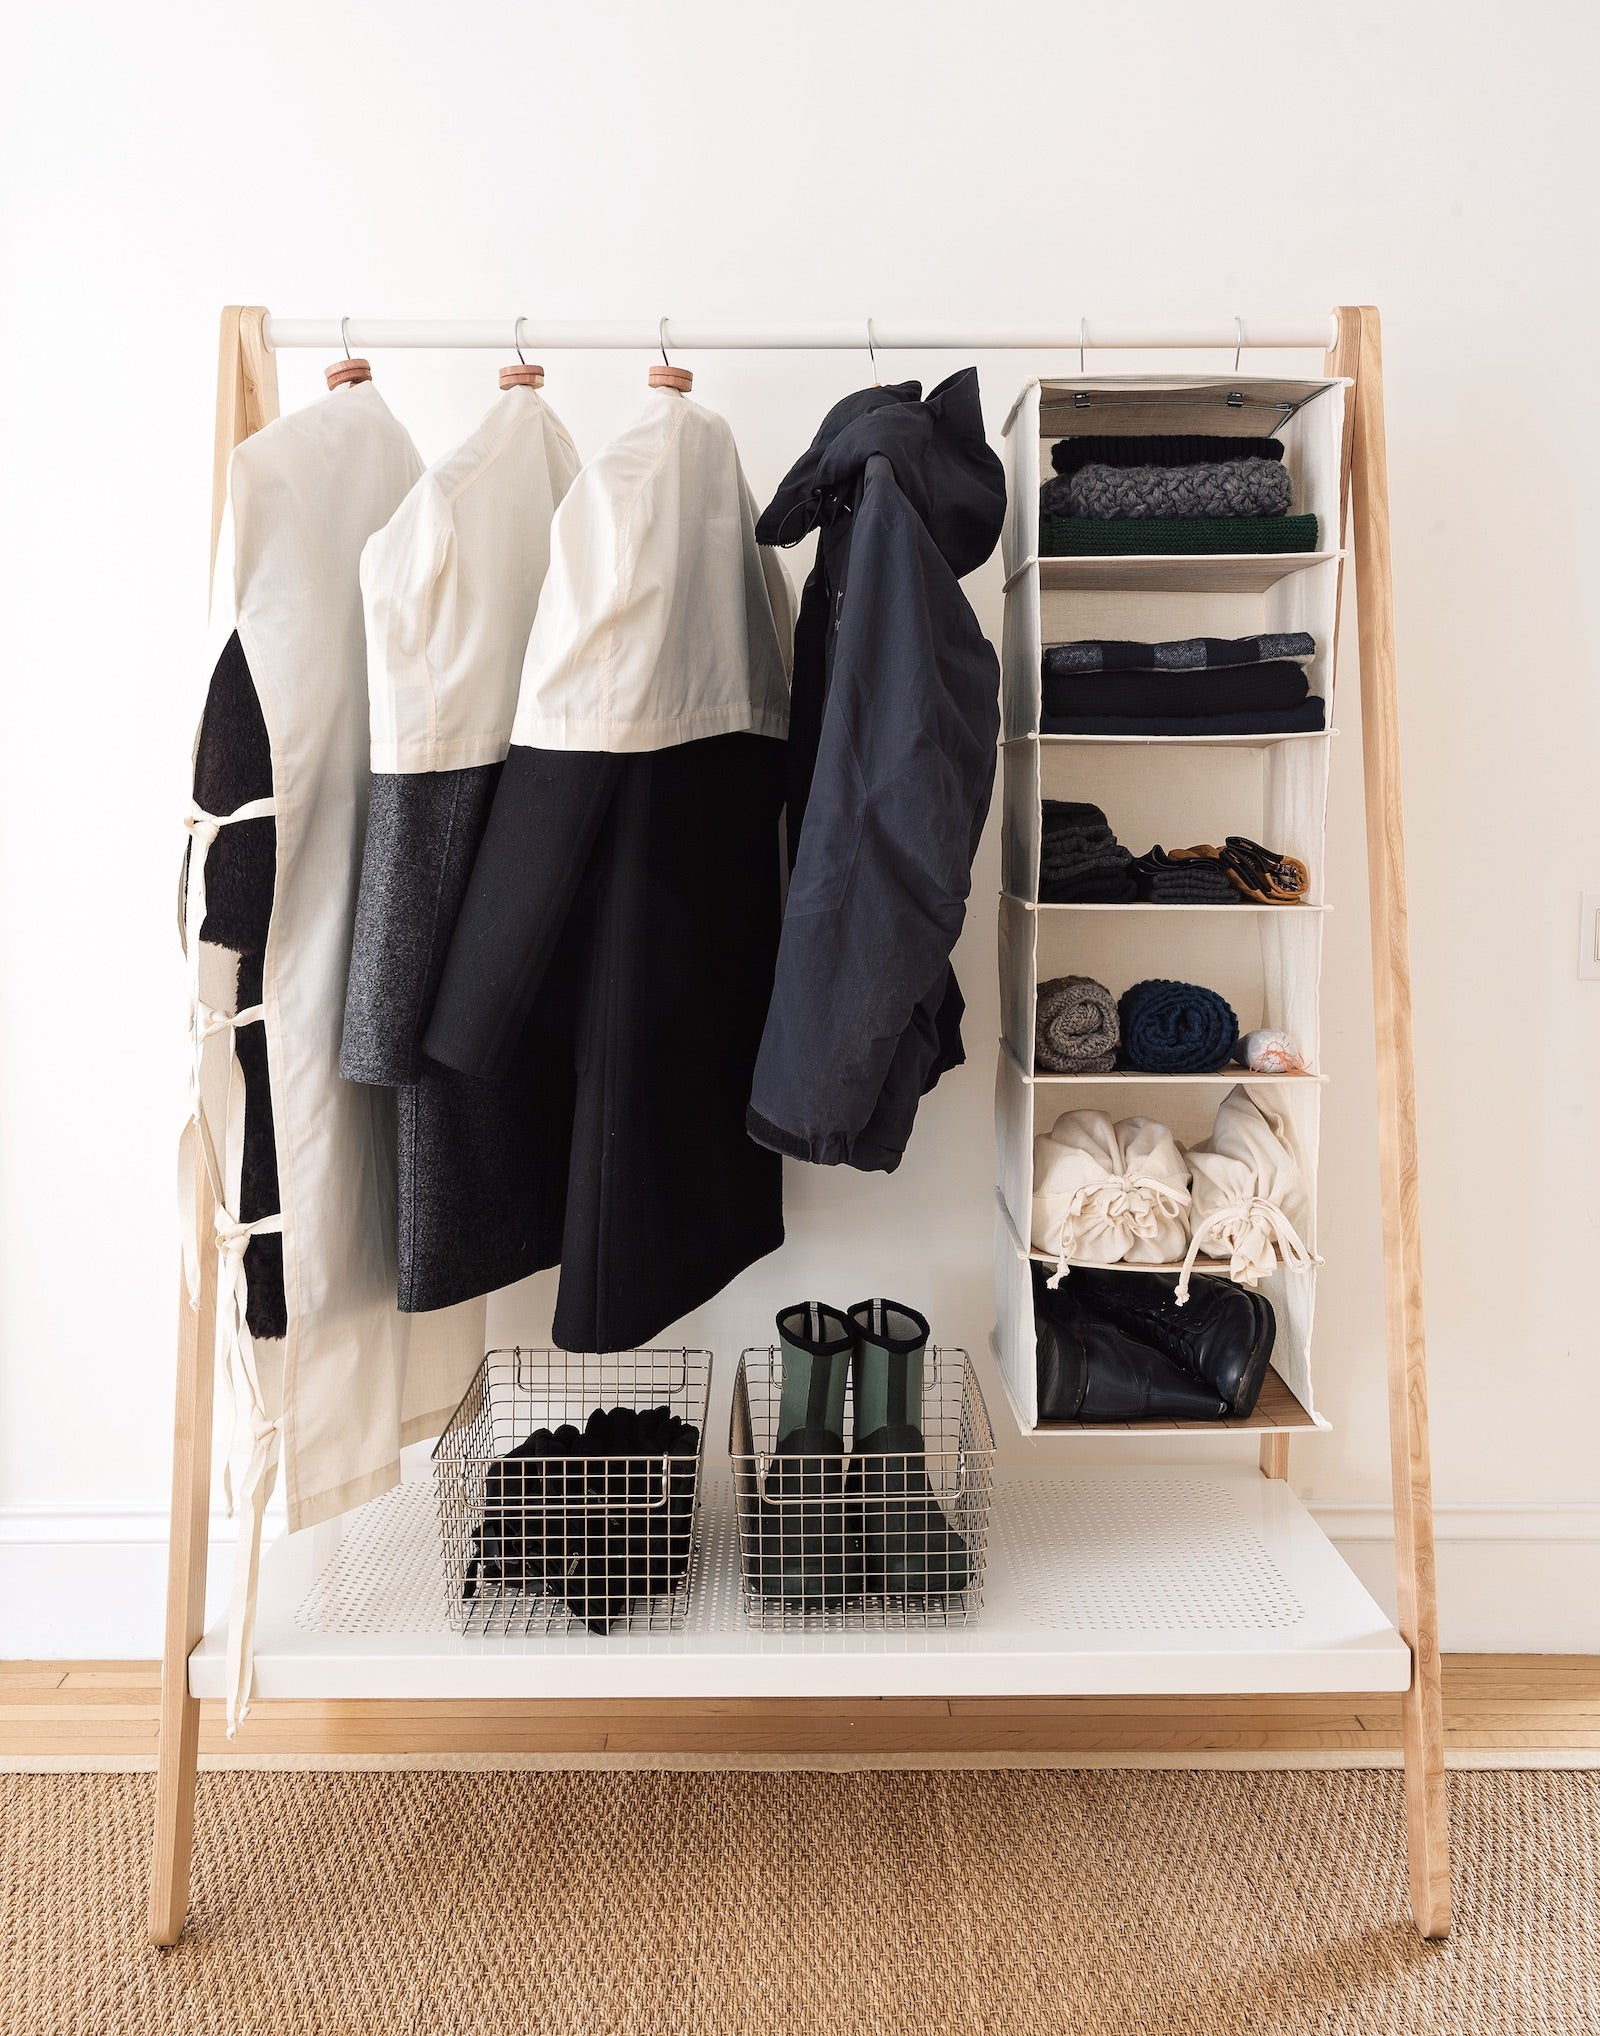 5 Tips for Storing Your Out-of-Season Clothing